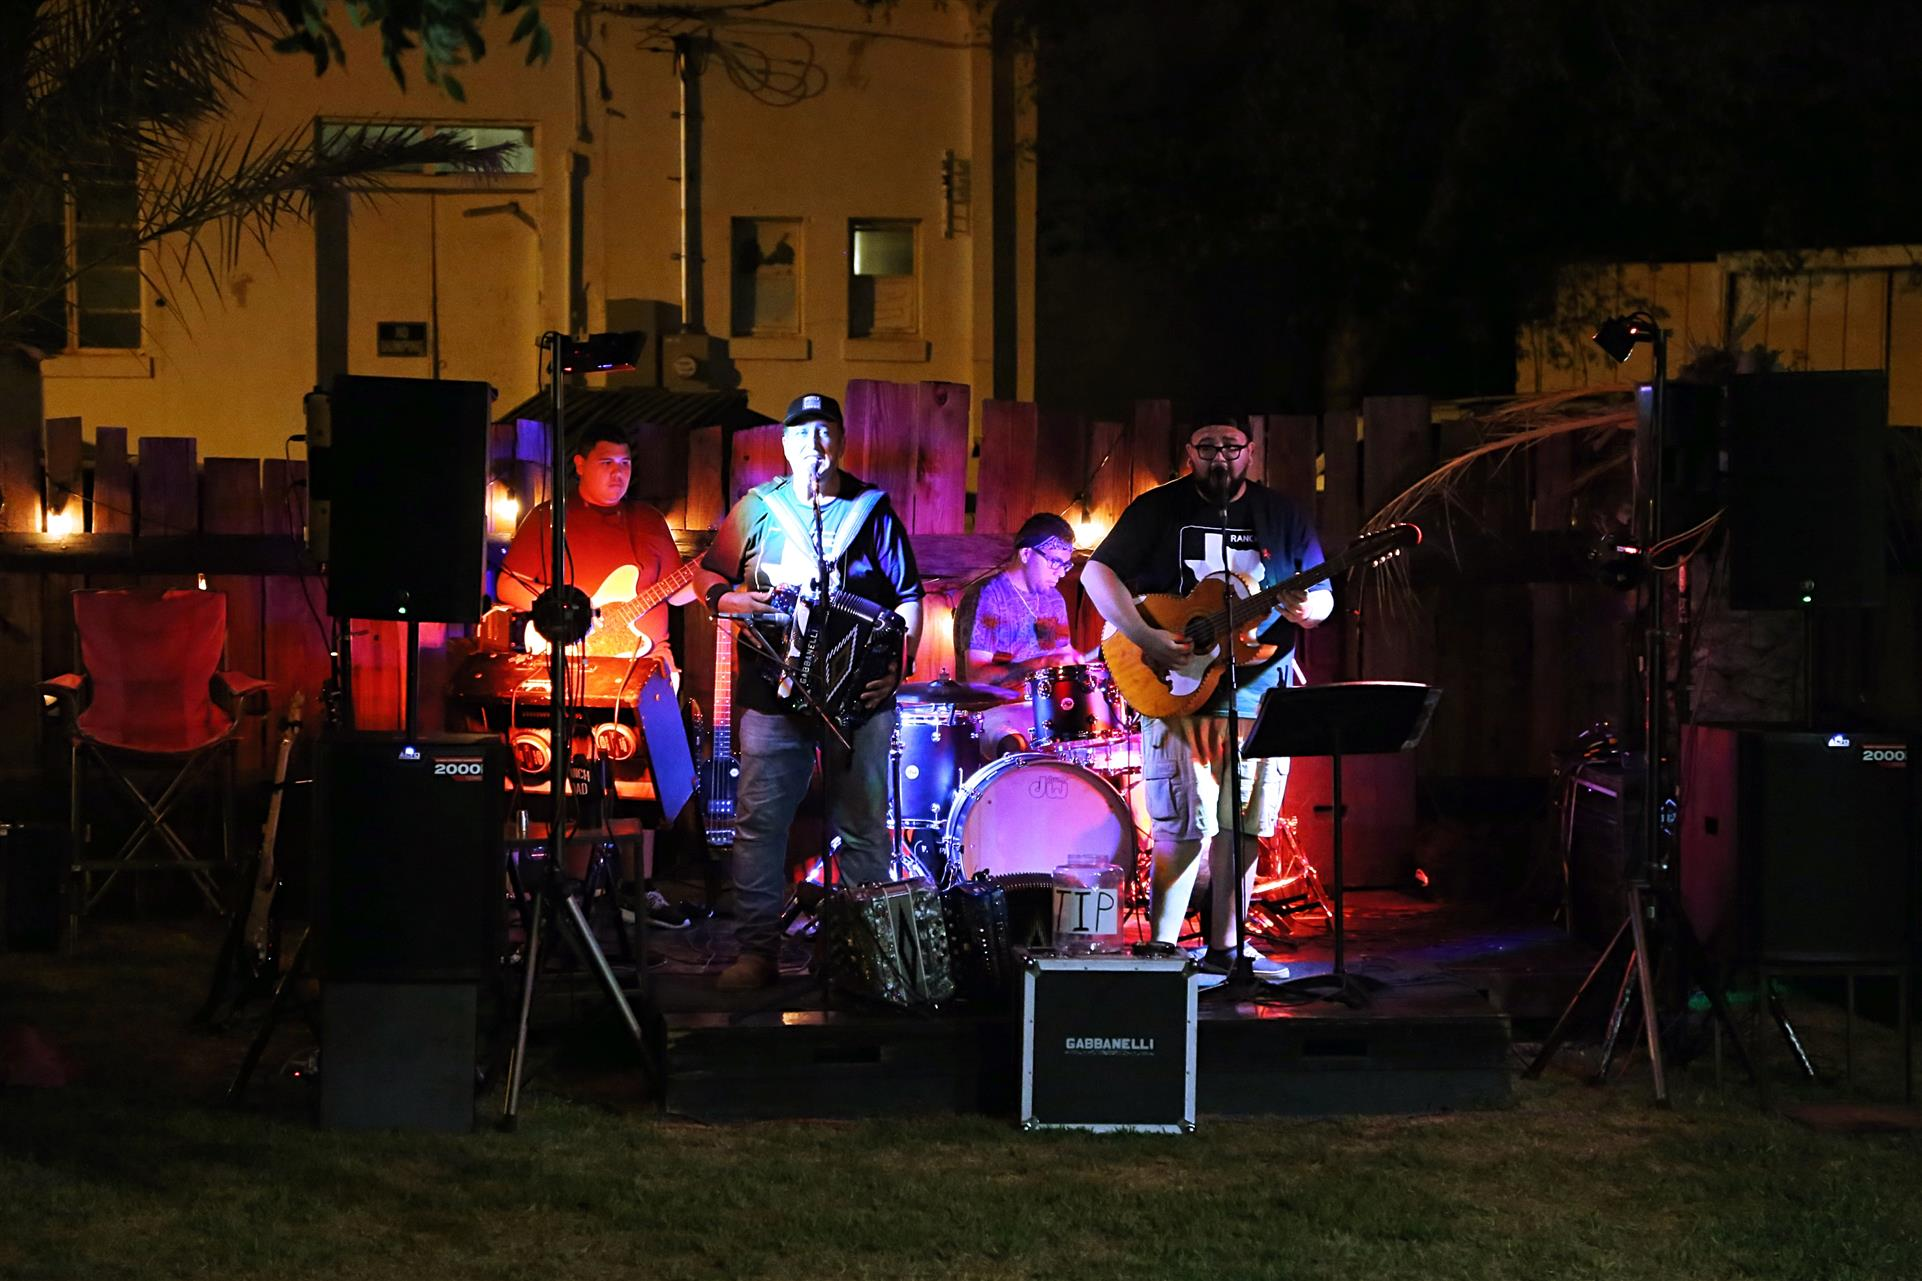 live band performing on an outdoor stage